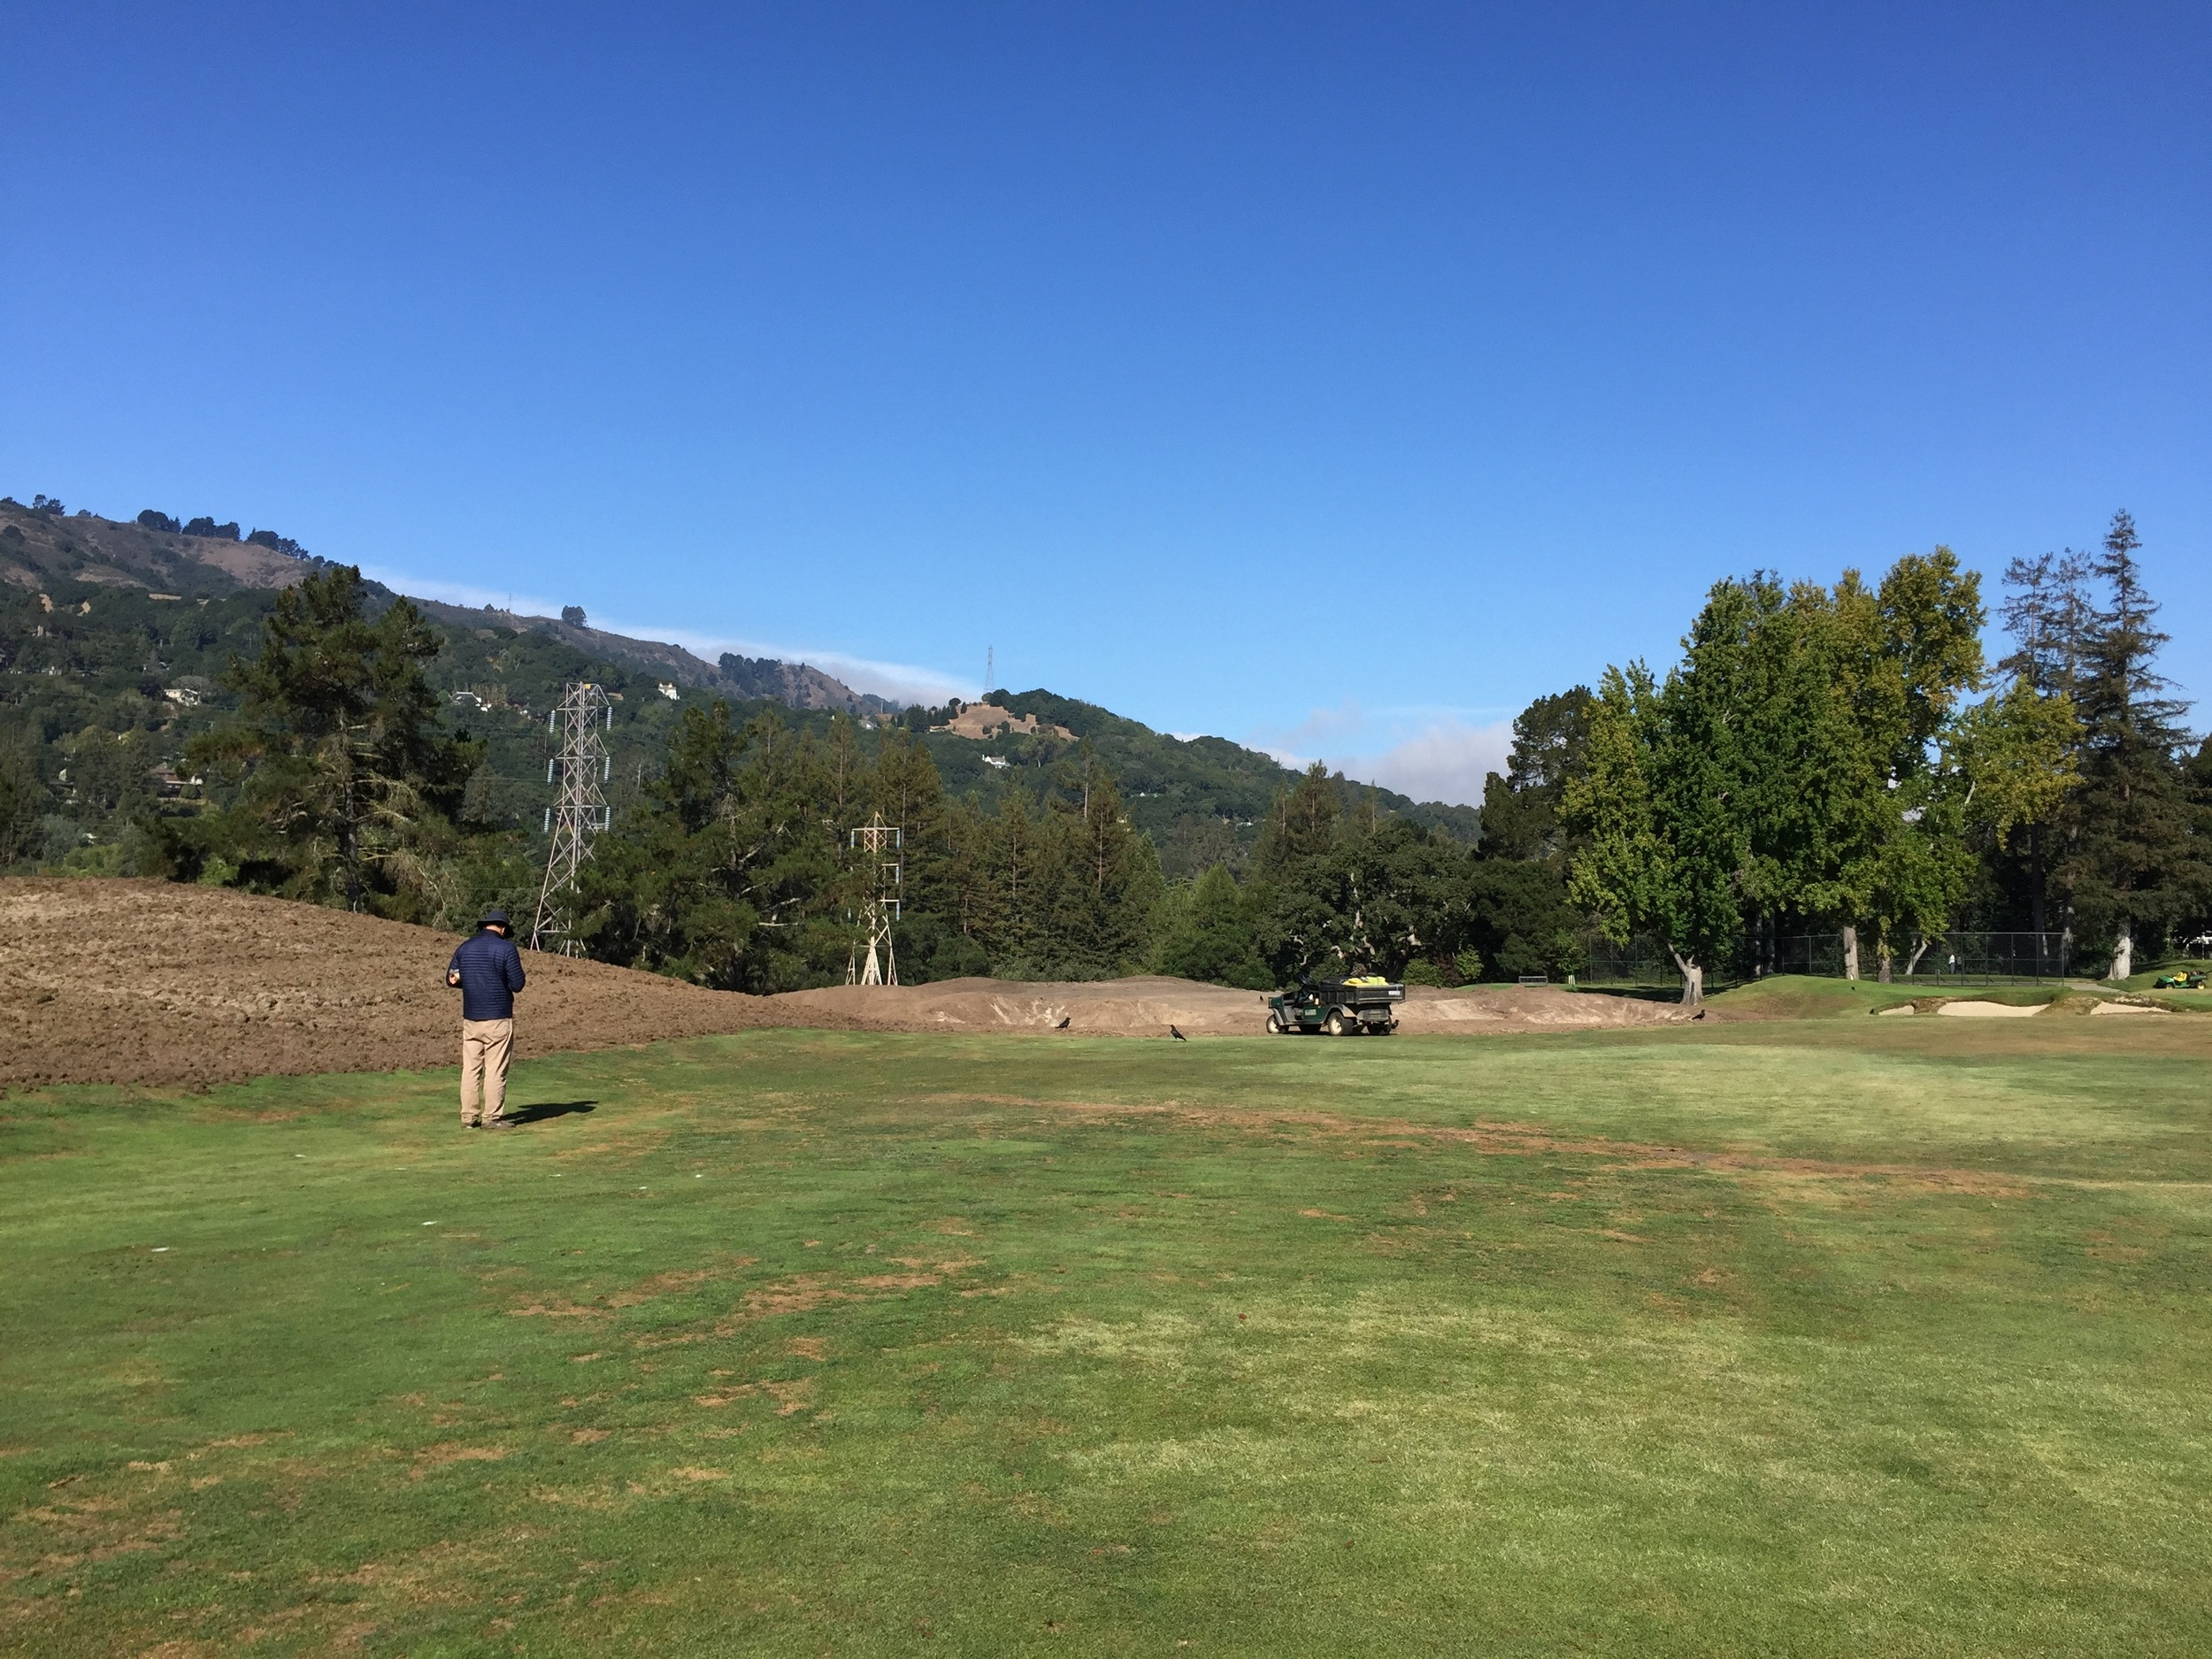 hochstein-design-orinda-cc-hole-12-construction-1.jpg